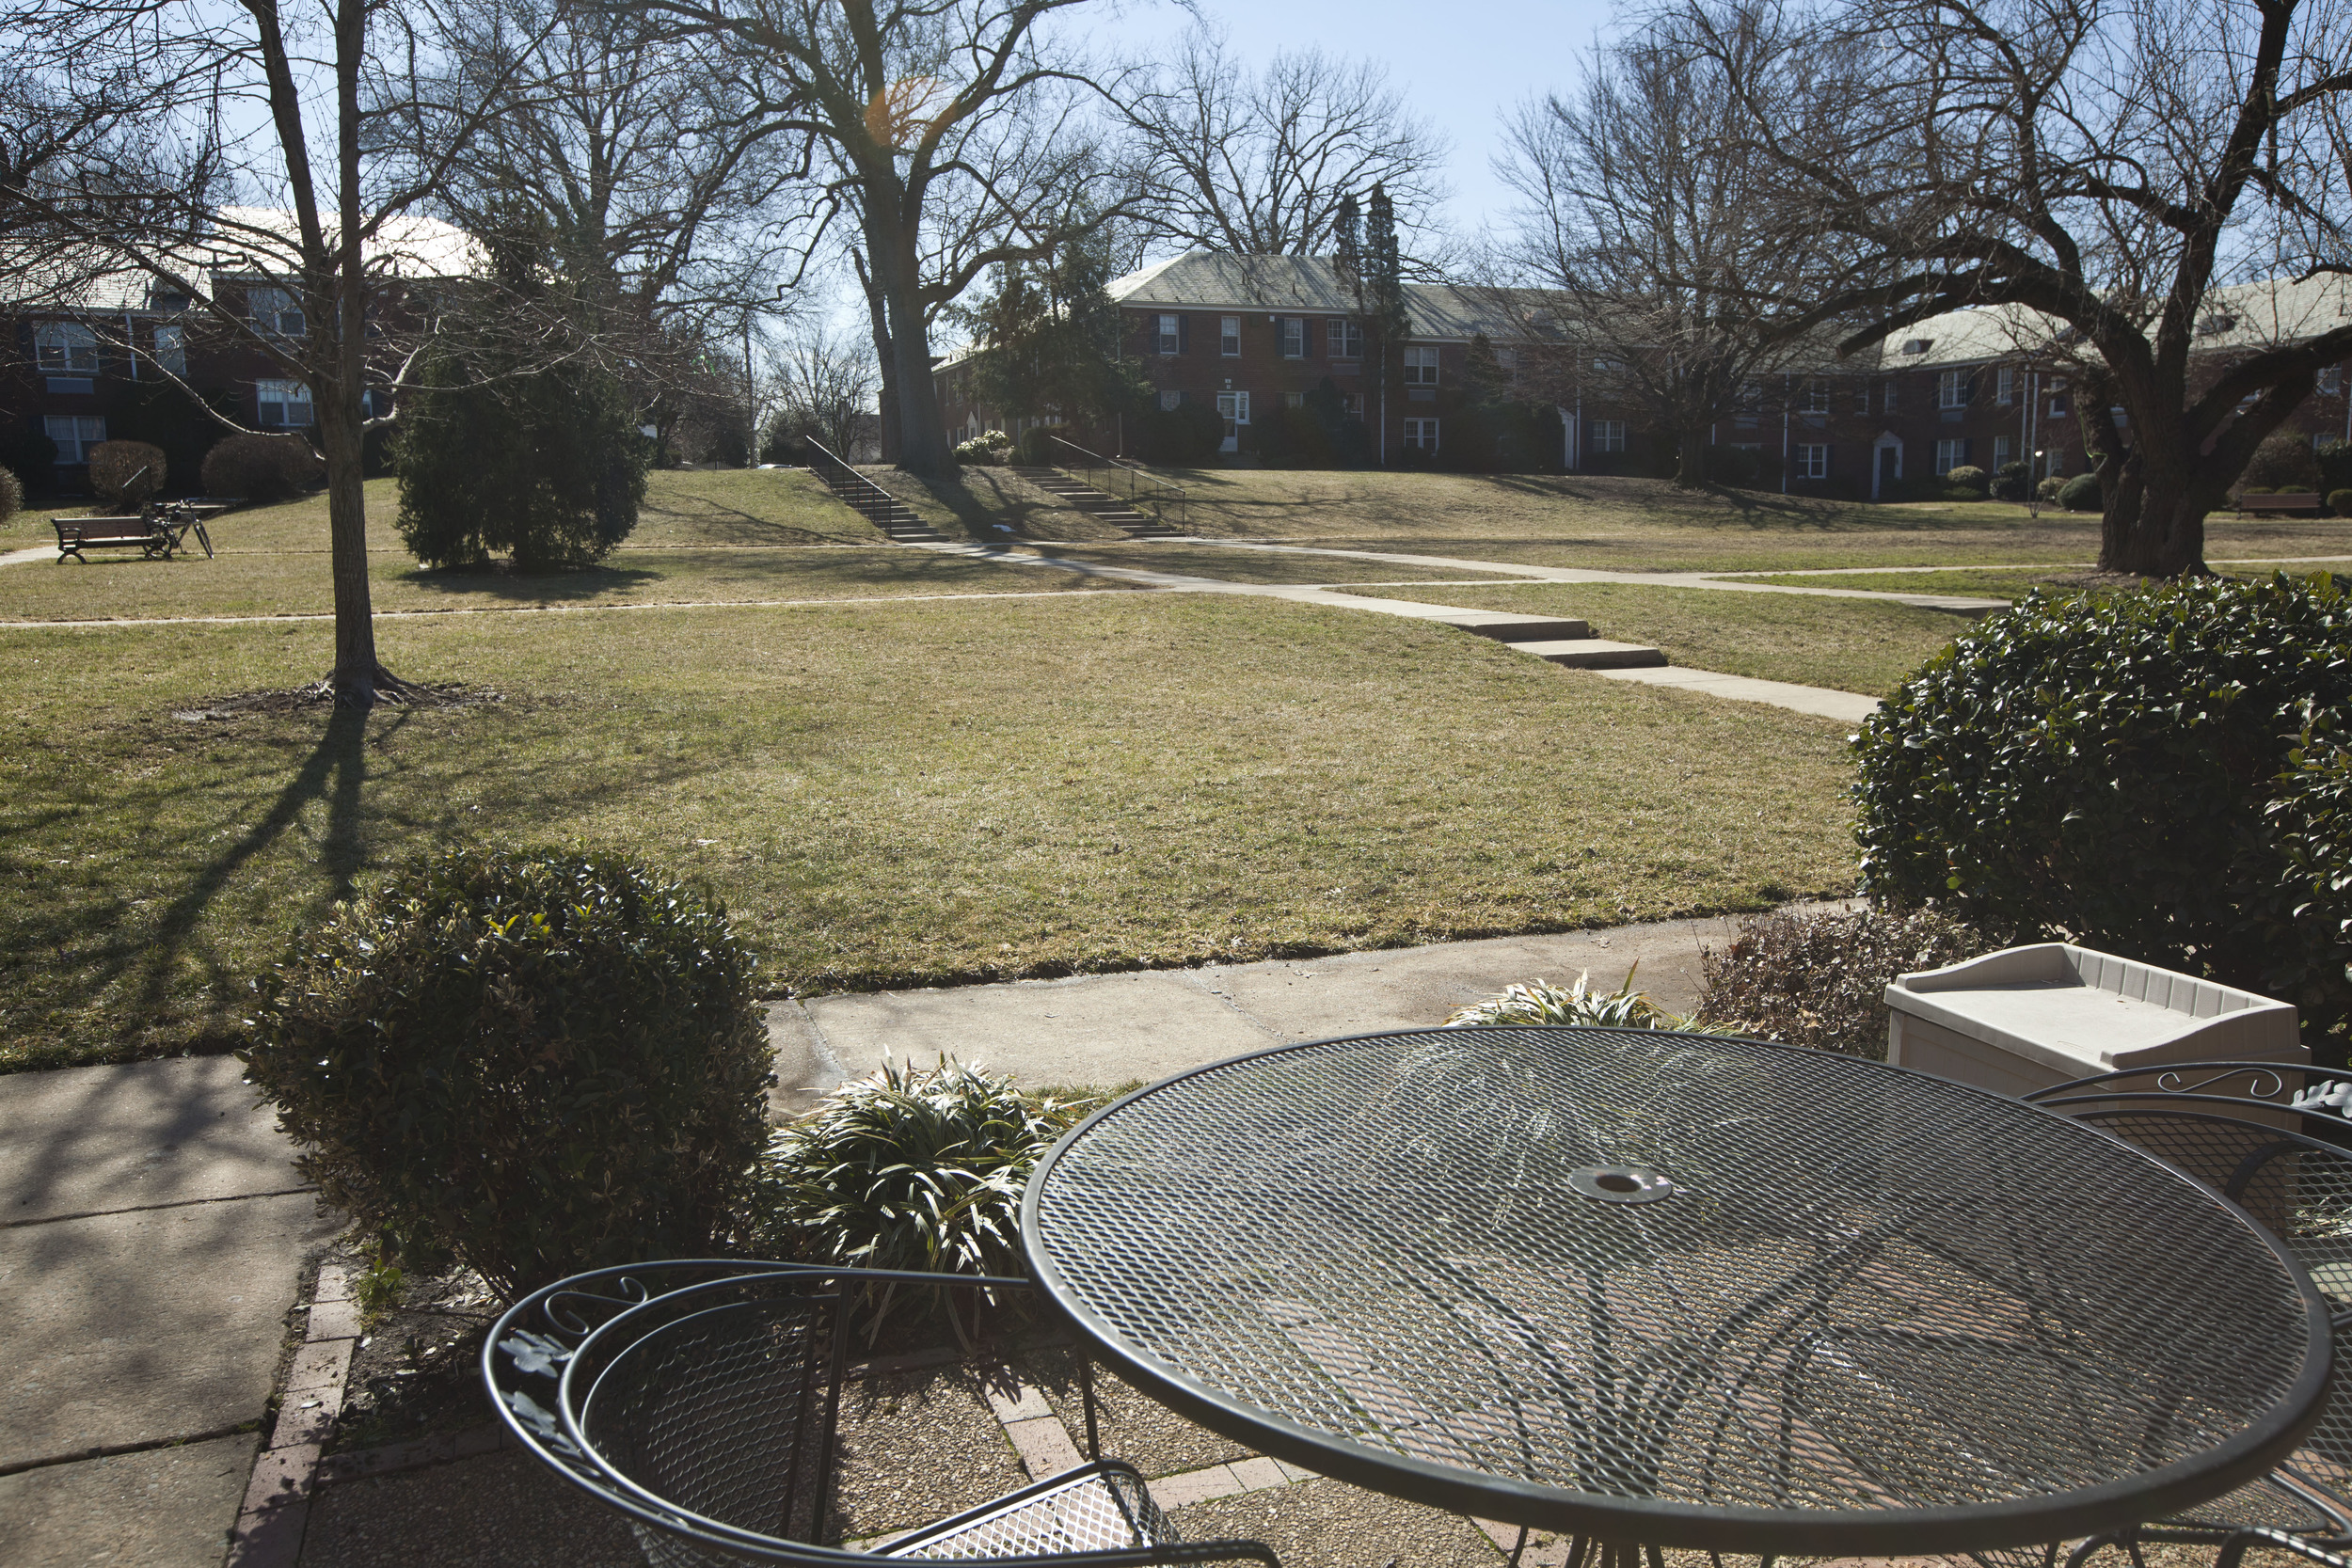 Patio area and proximity to large, fenced court yard.